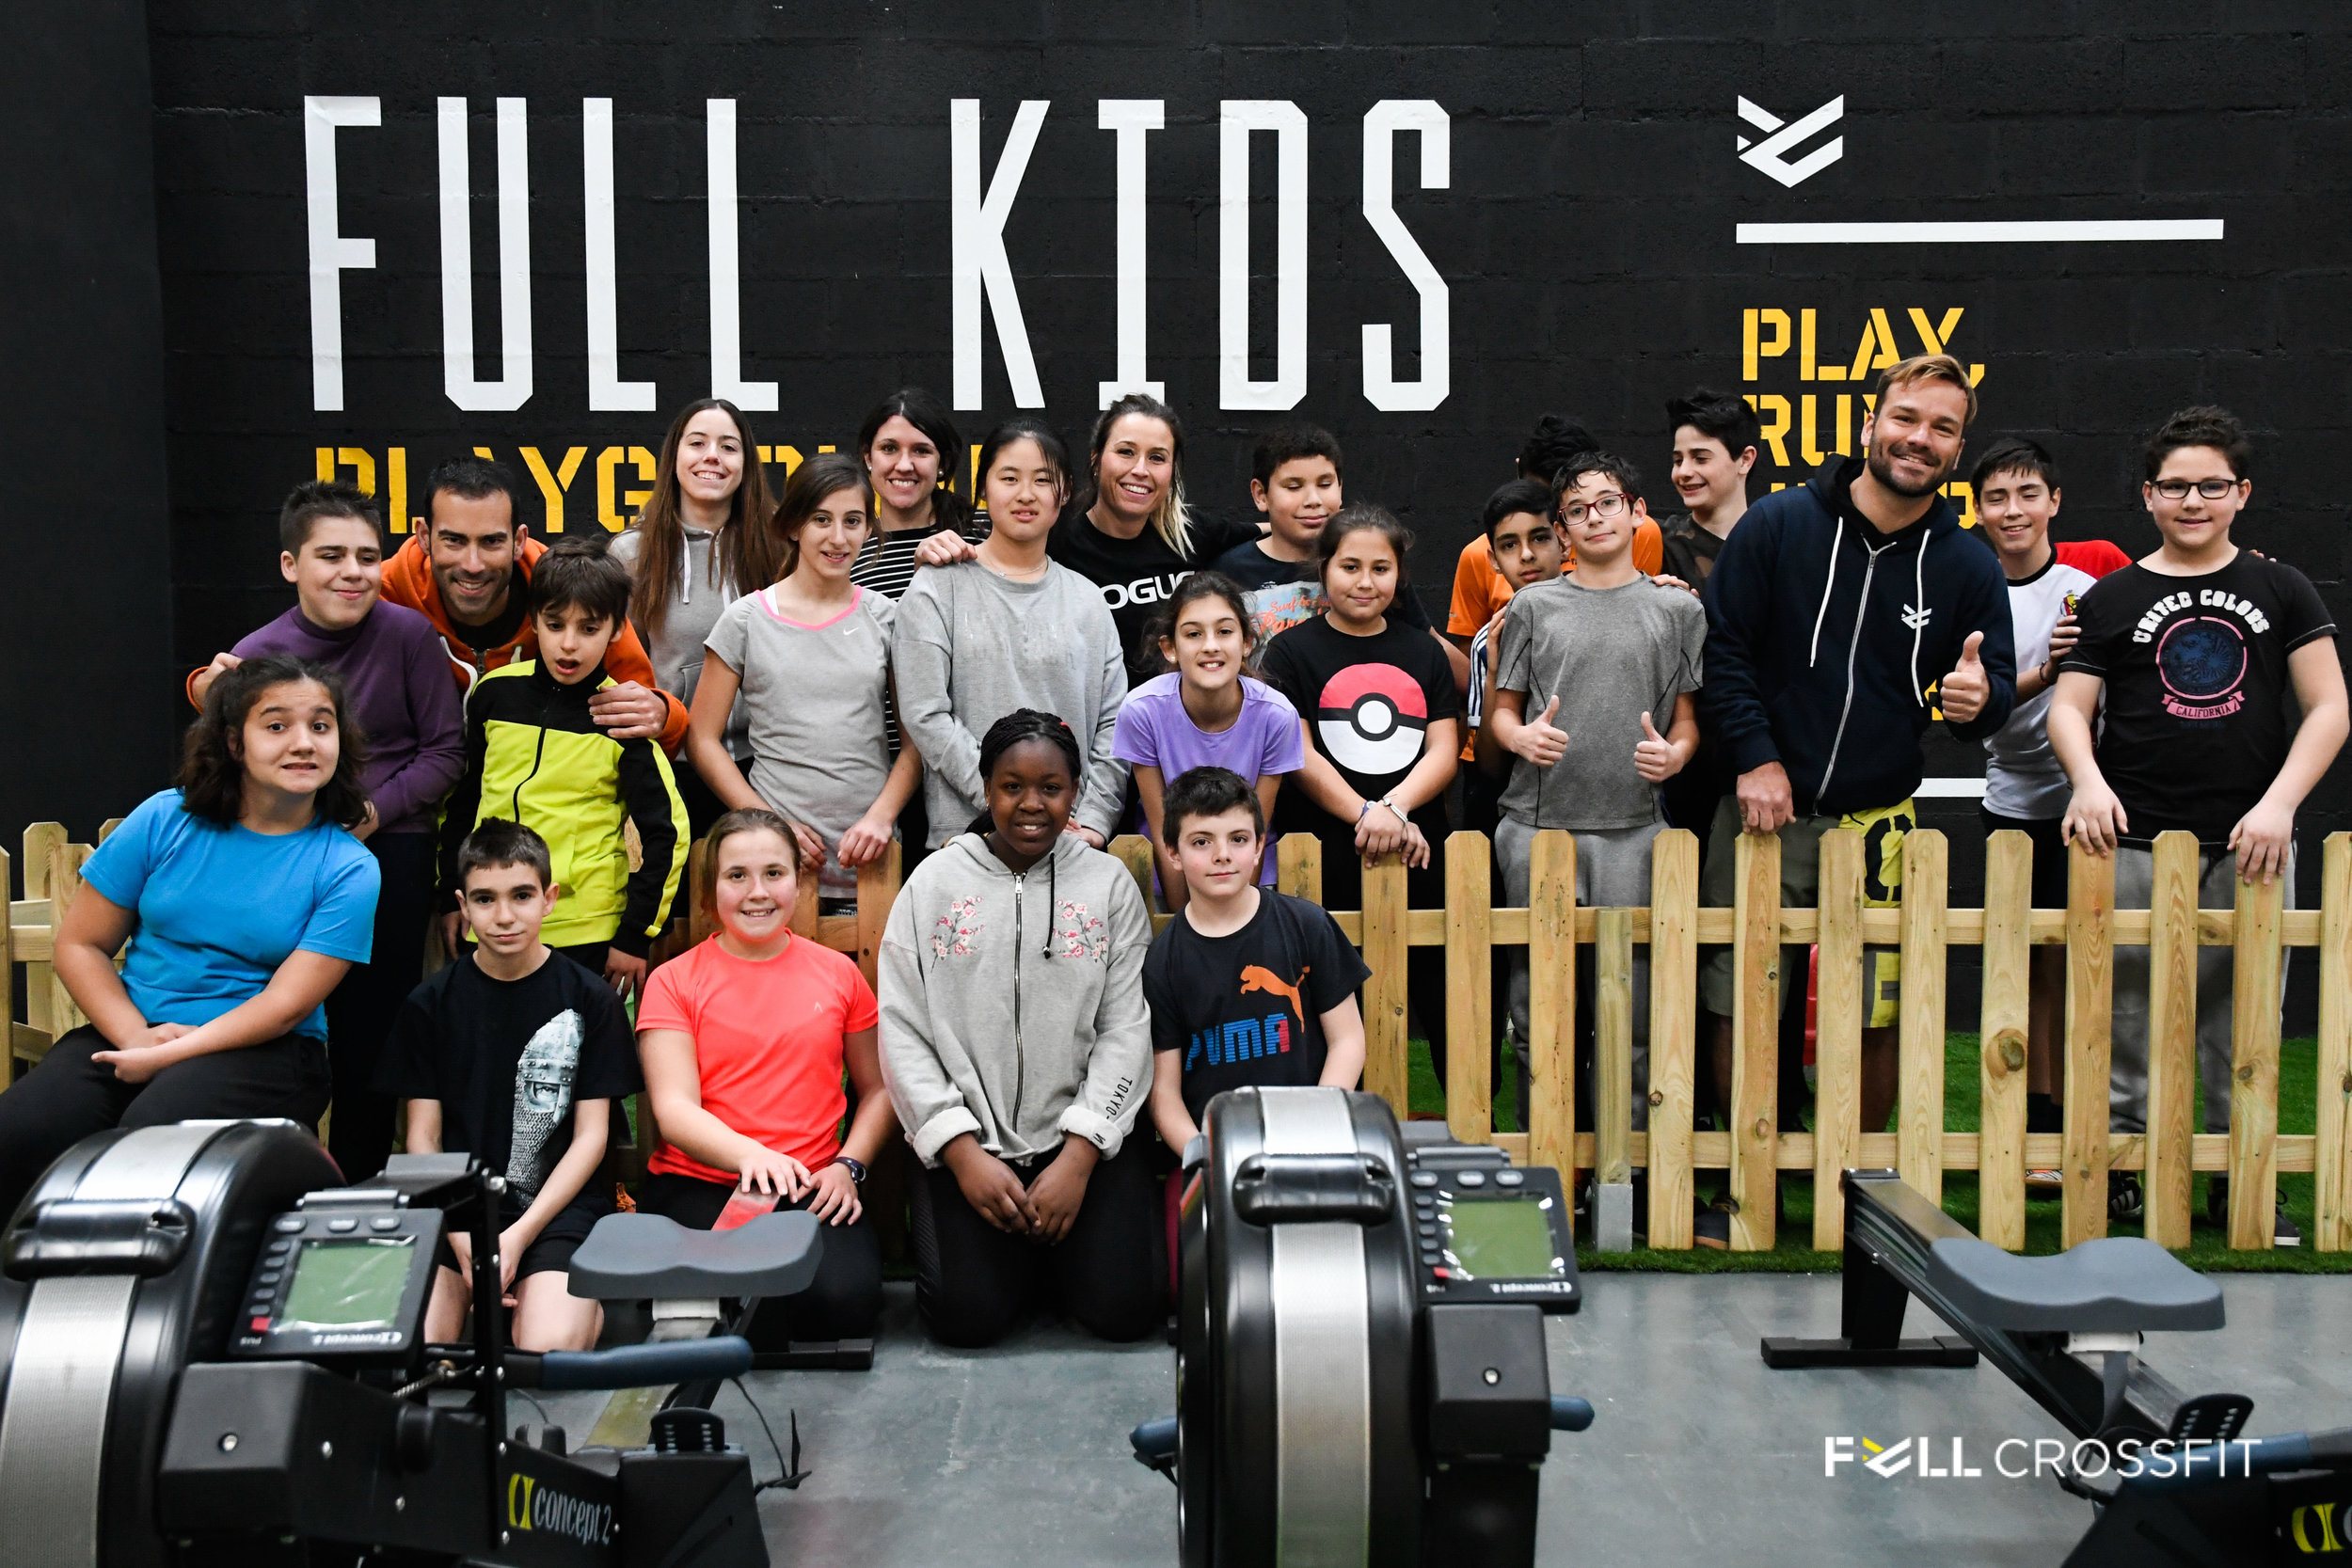 Full_Crossfit_kids-41.jpg